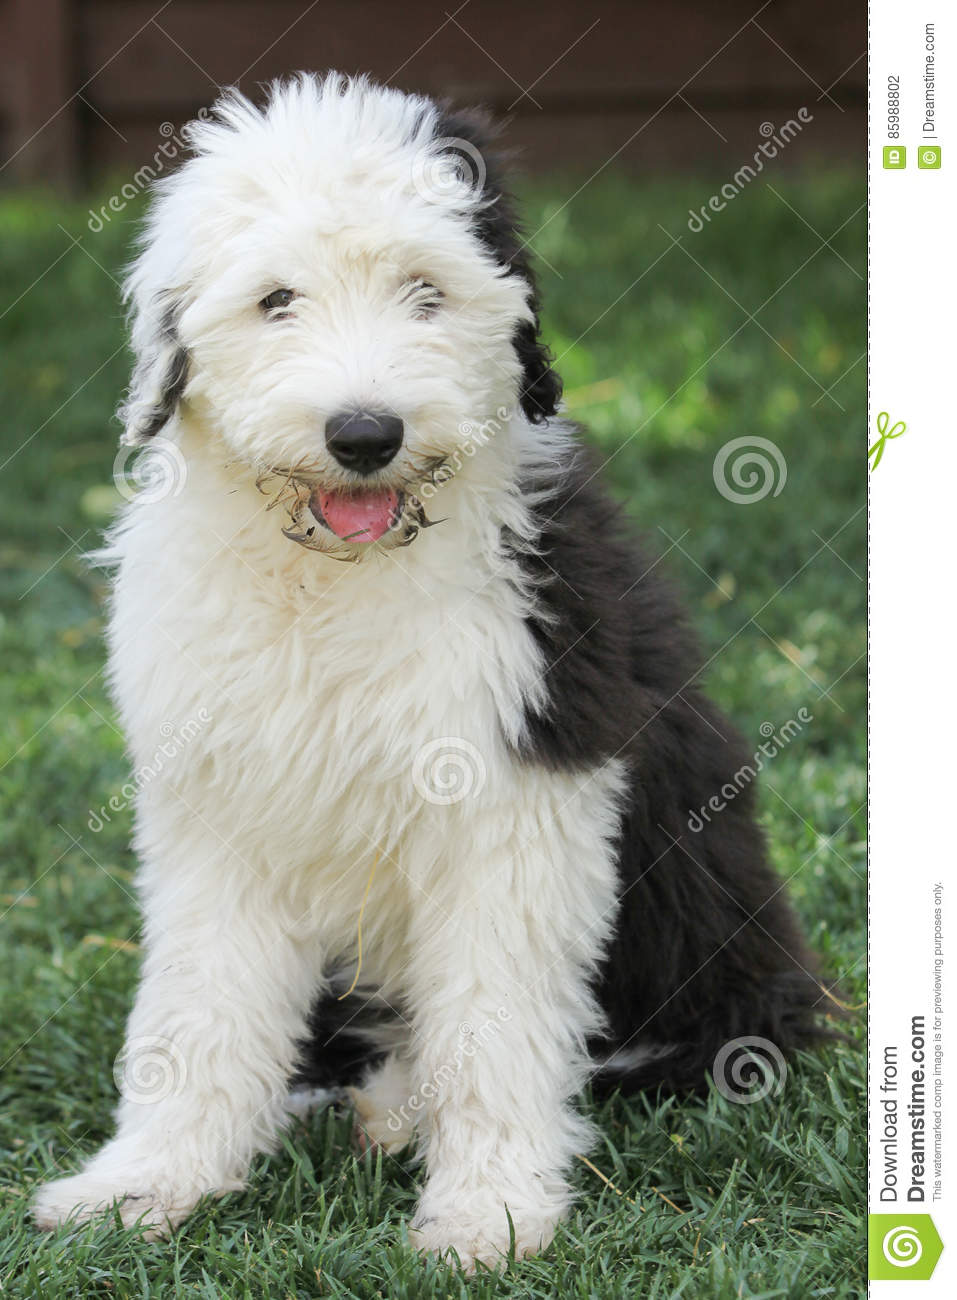 Are Old English Olivia A Female Old English Sheepdog Puppy Stock Photo Image Of